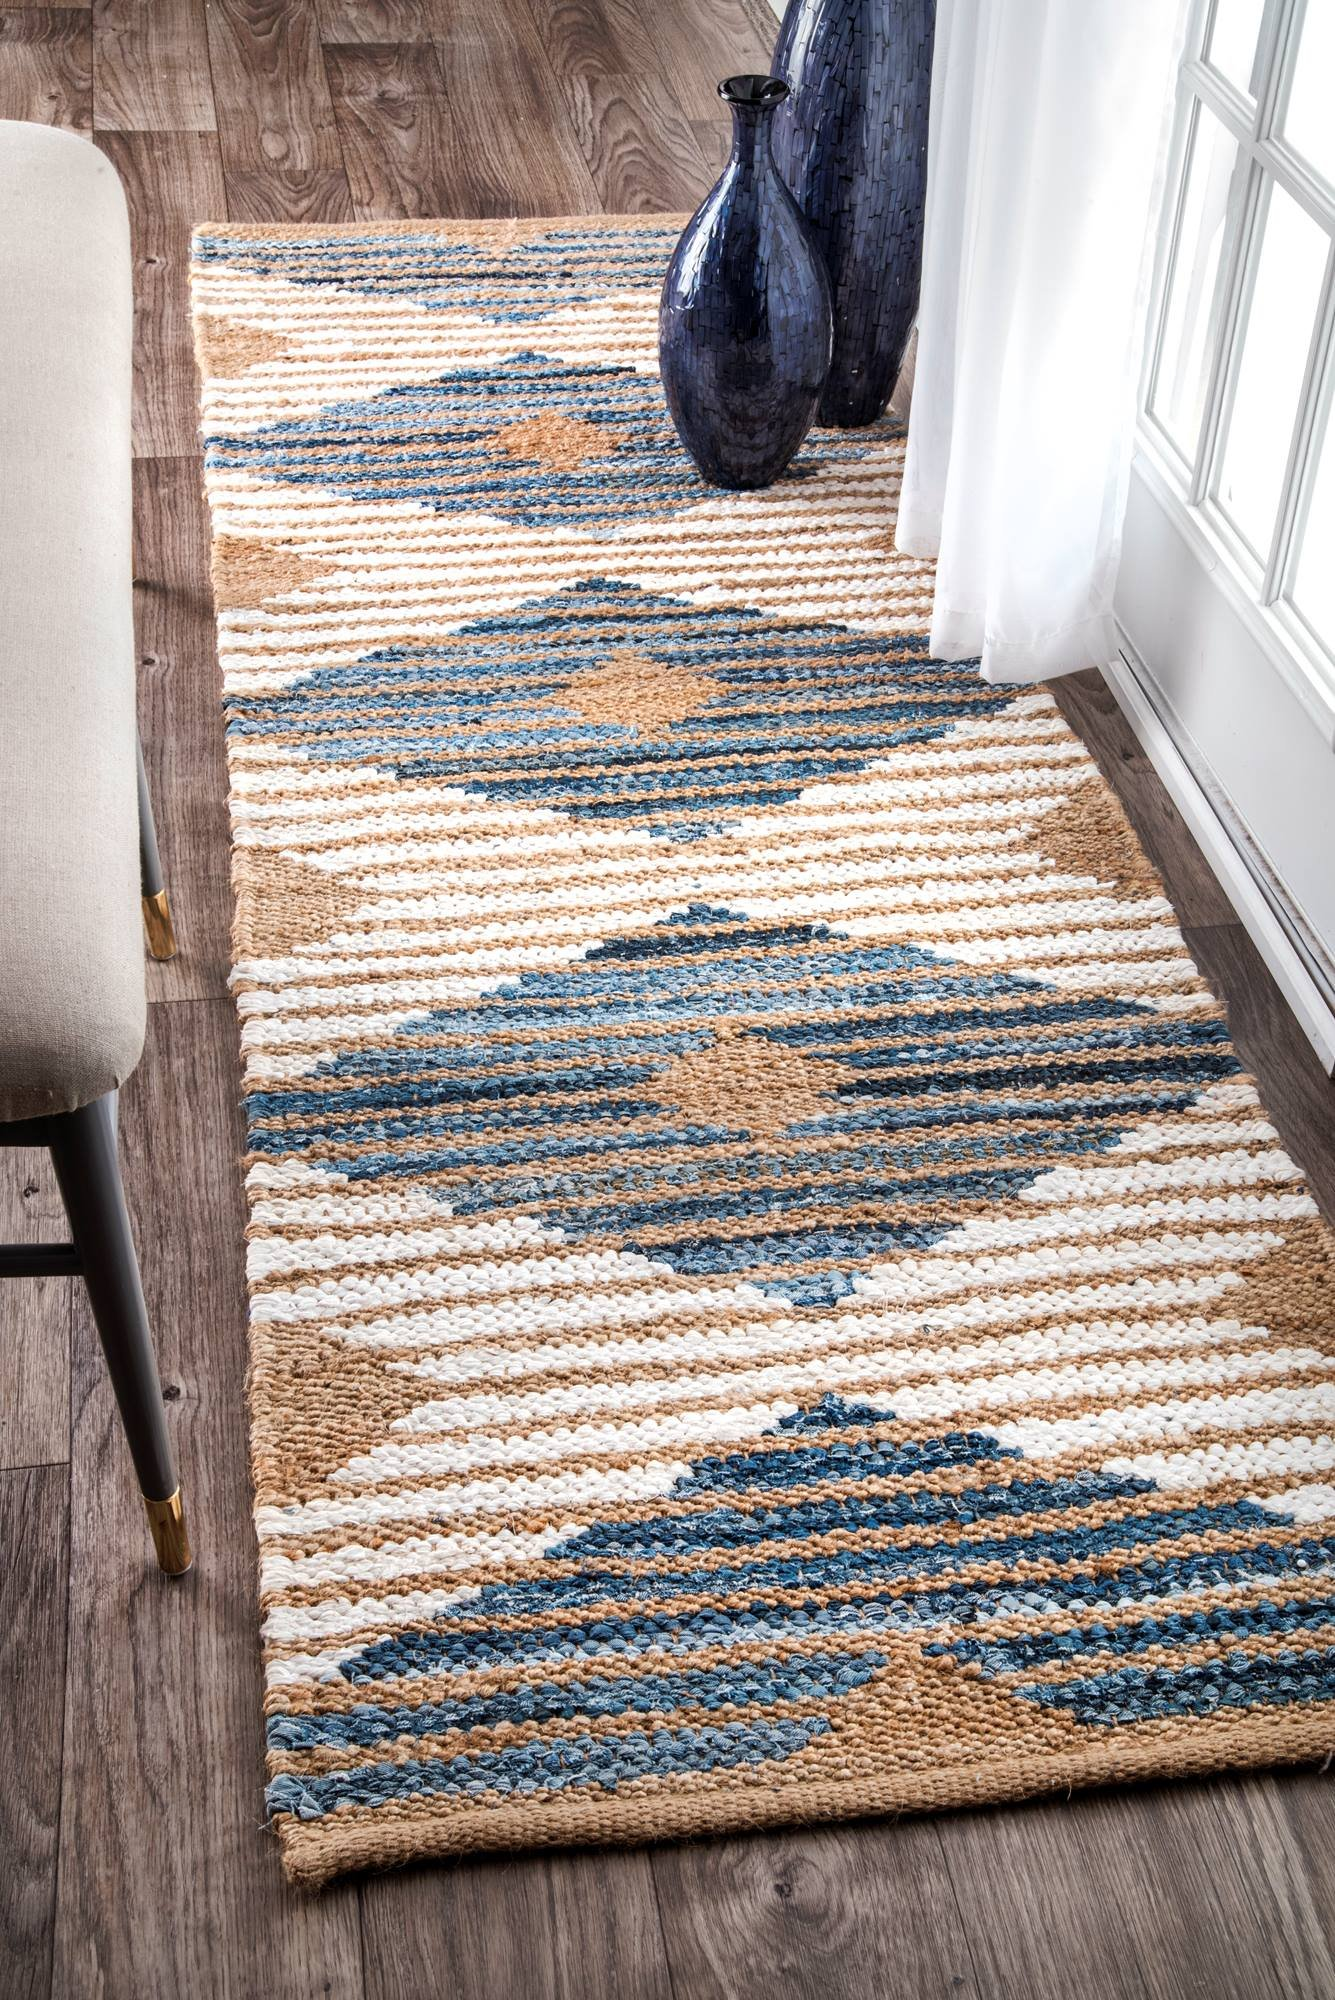 nuLOOM Otelia Denim Jute Runner Rug, 2' 6'' x 8', Denim & White by nuLOOM